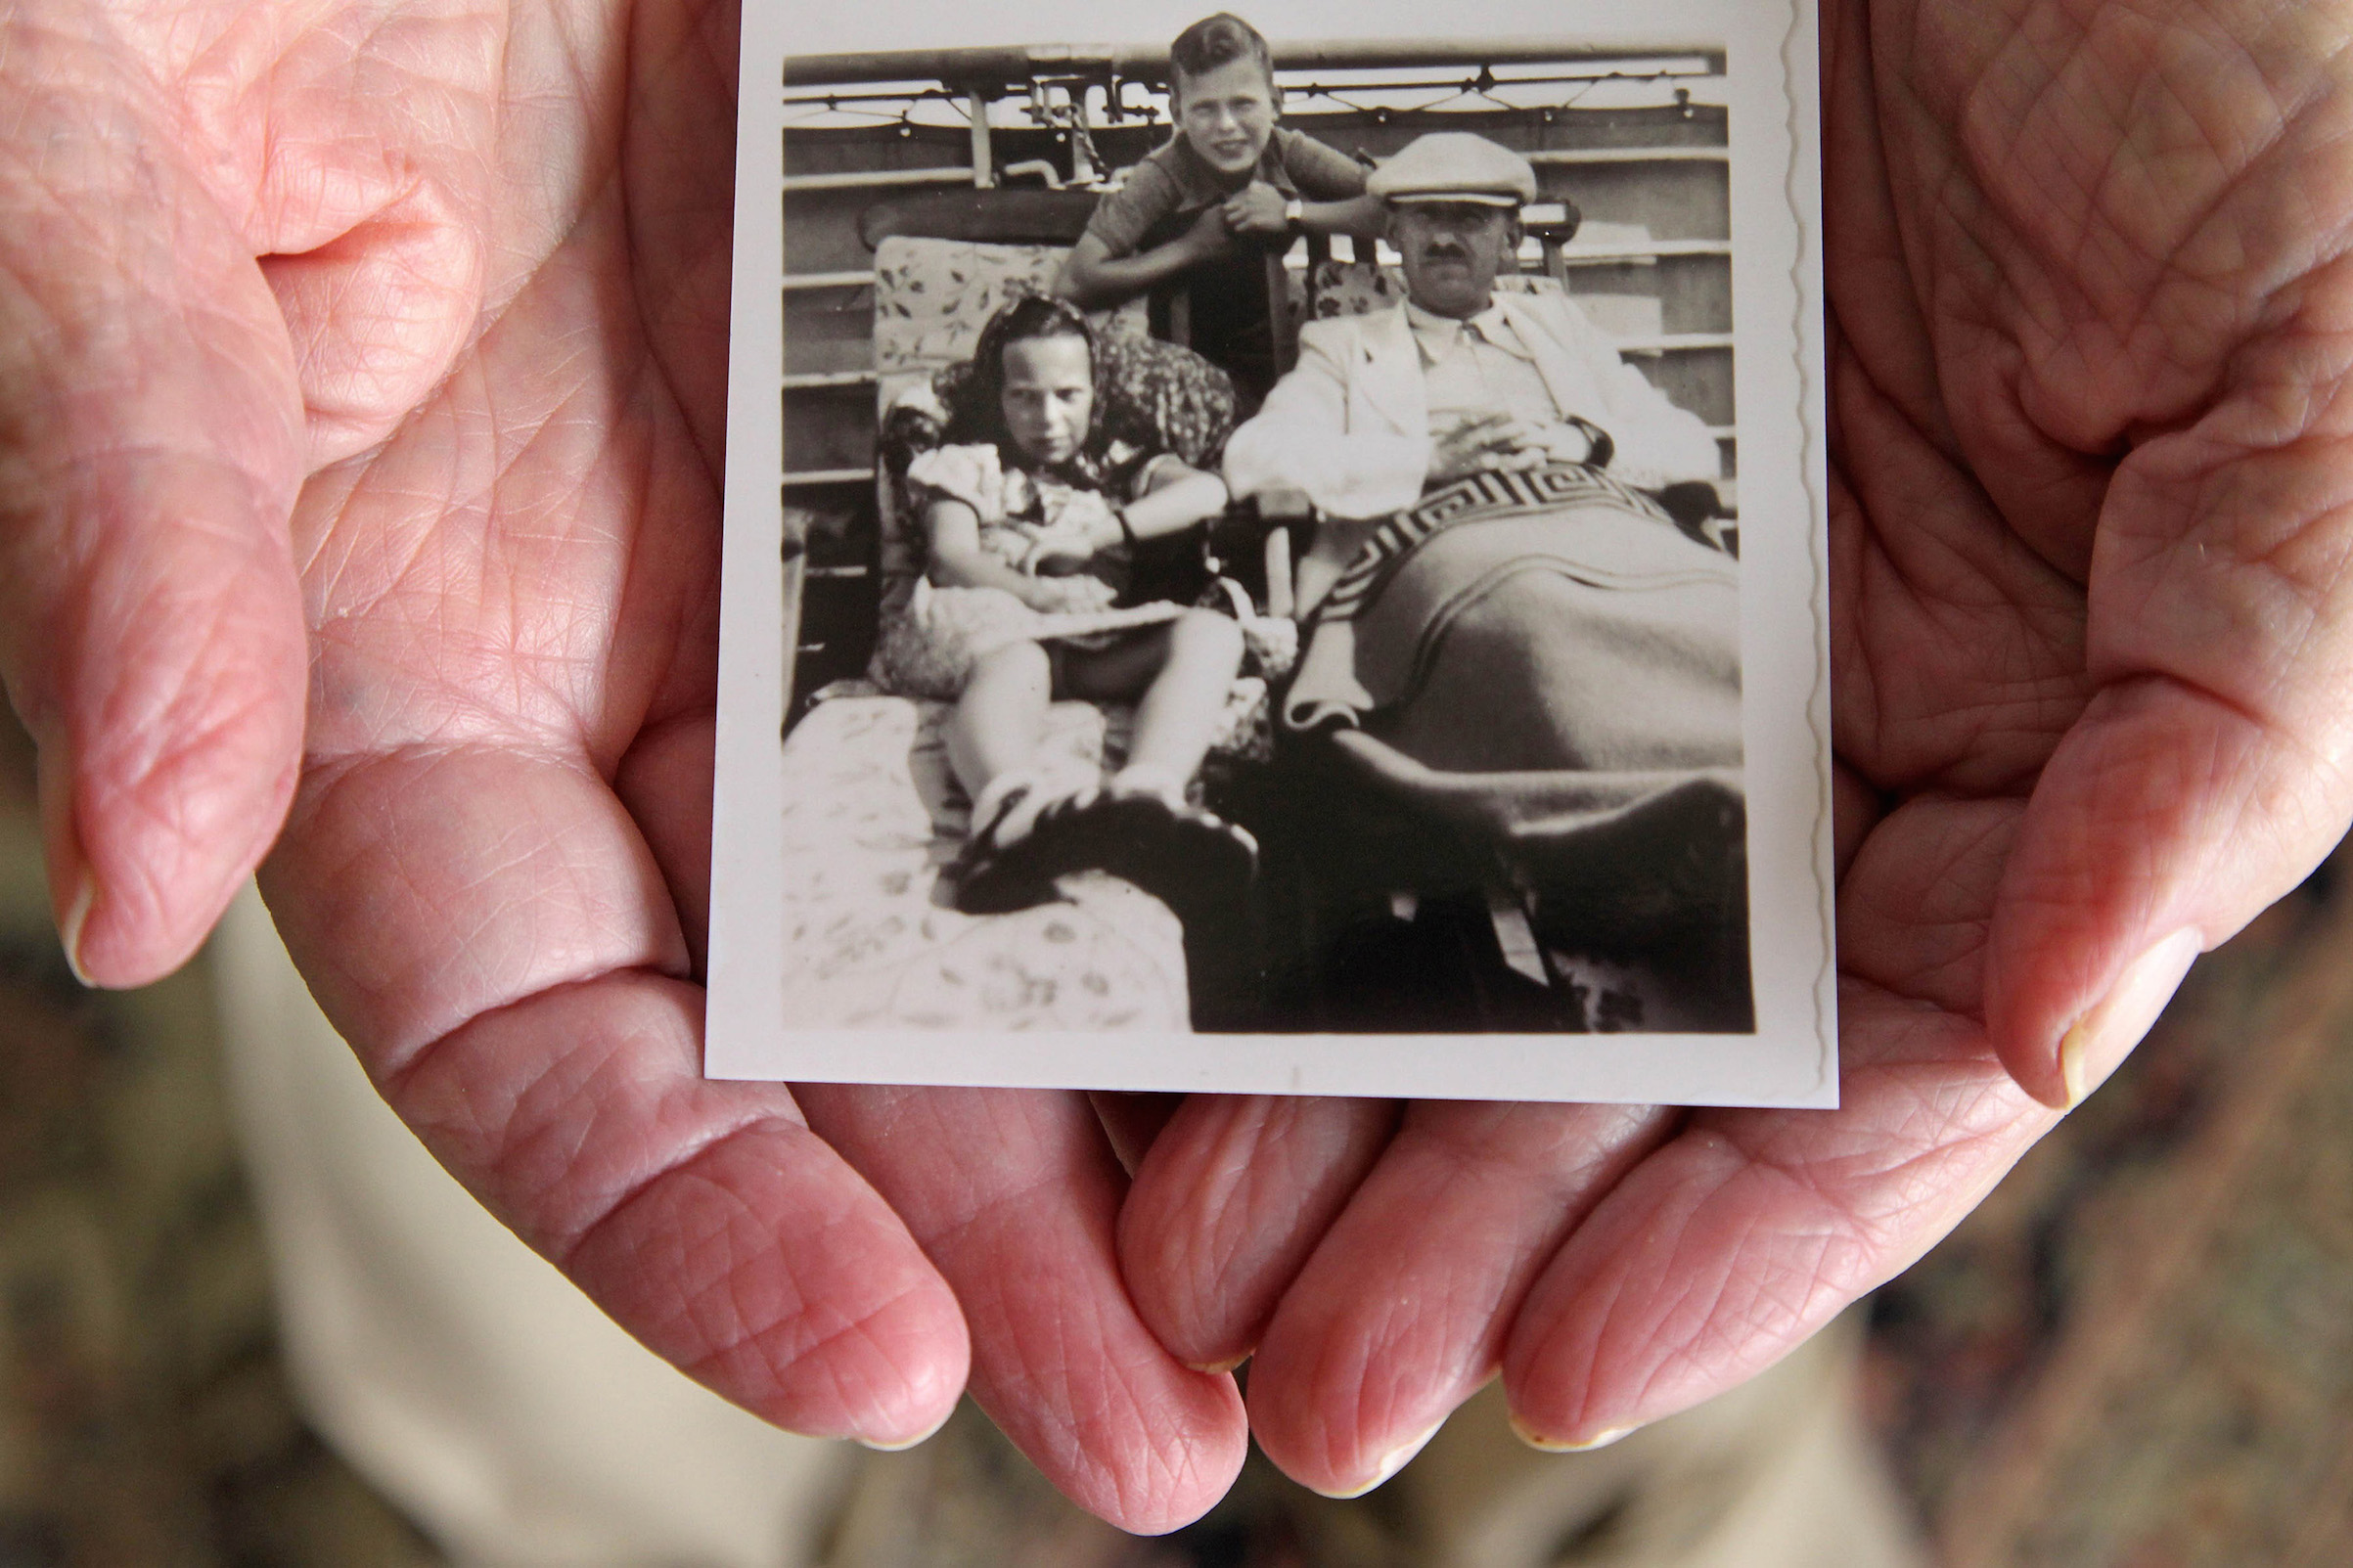 Herbert Karliner, one of the survivors of the 900 Jewish refugees fleeing Hitler who were aboard the ocean liner, St. Louis, in 1939, shares photos and documents from his ordeal on Nov. 18, 2015, in Aventura, Fla.